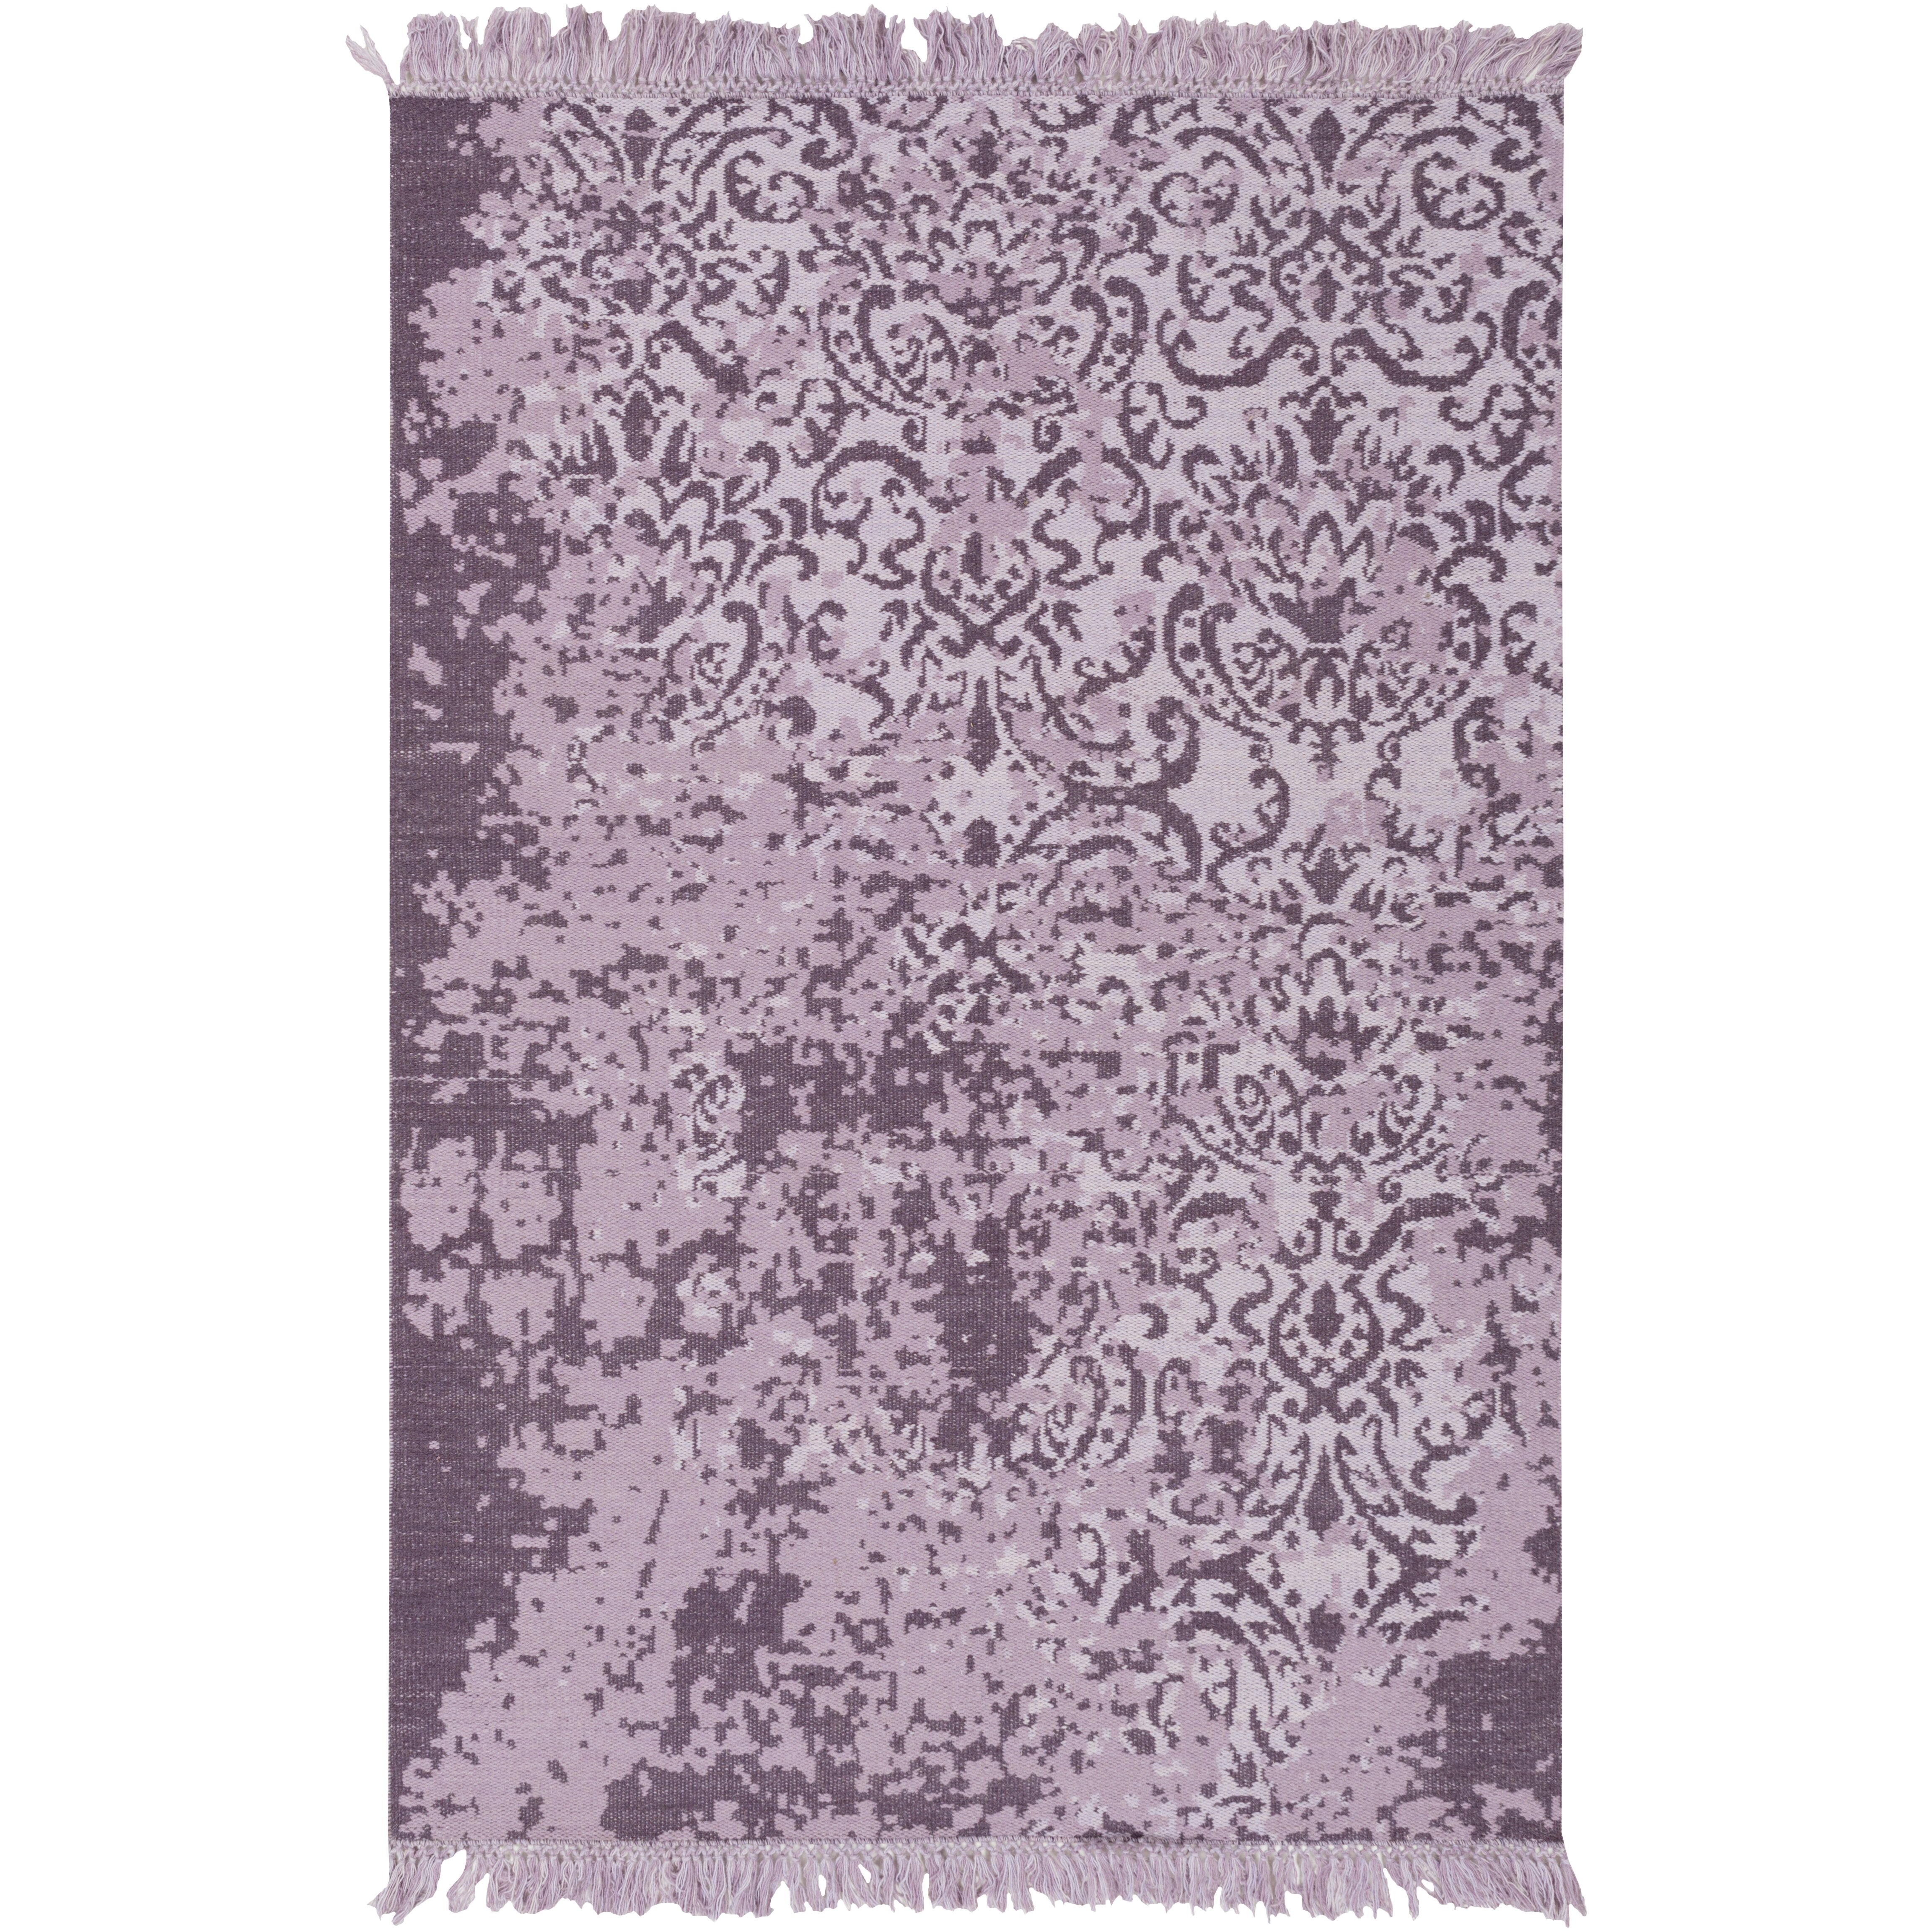 Charming Bungalow Rose Willemstad Hand Woven Purple Area Rug